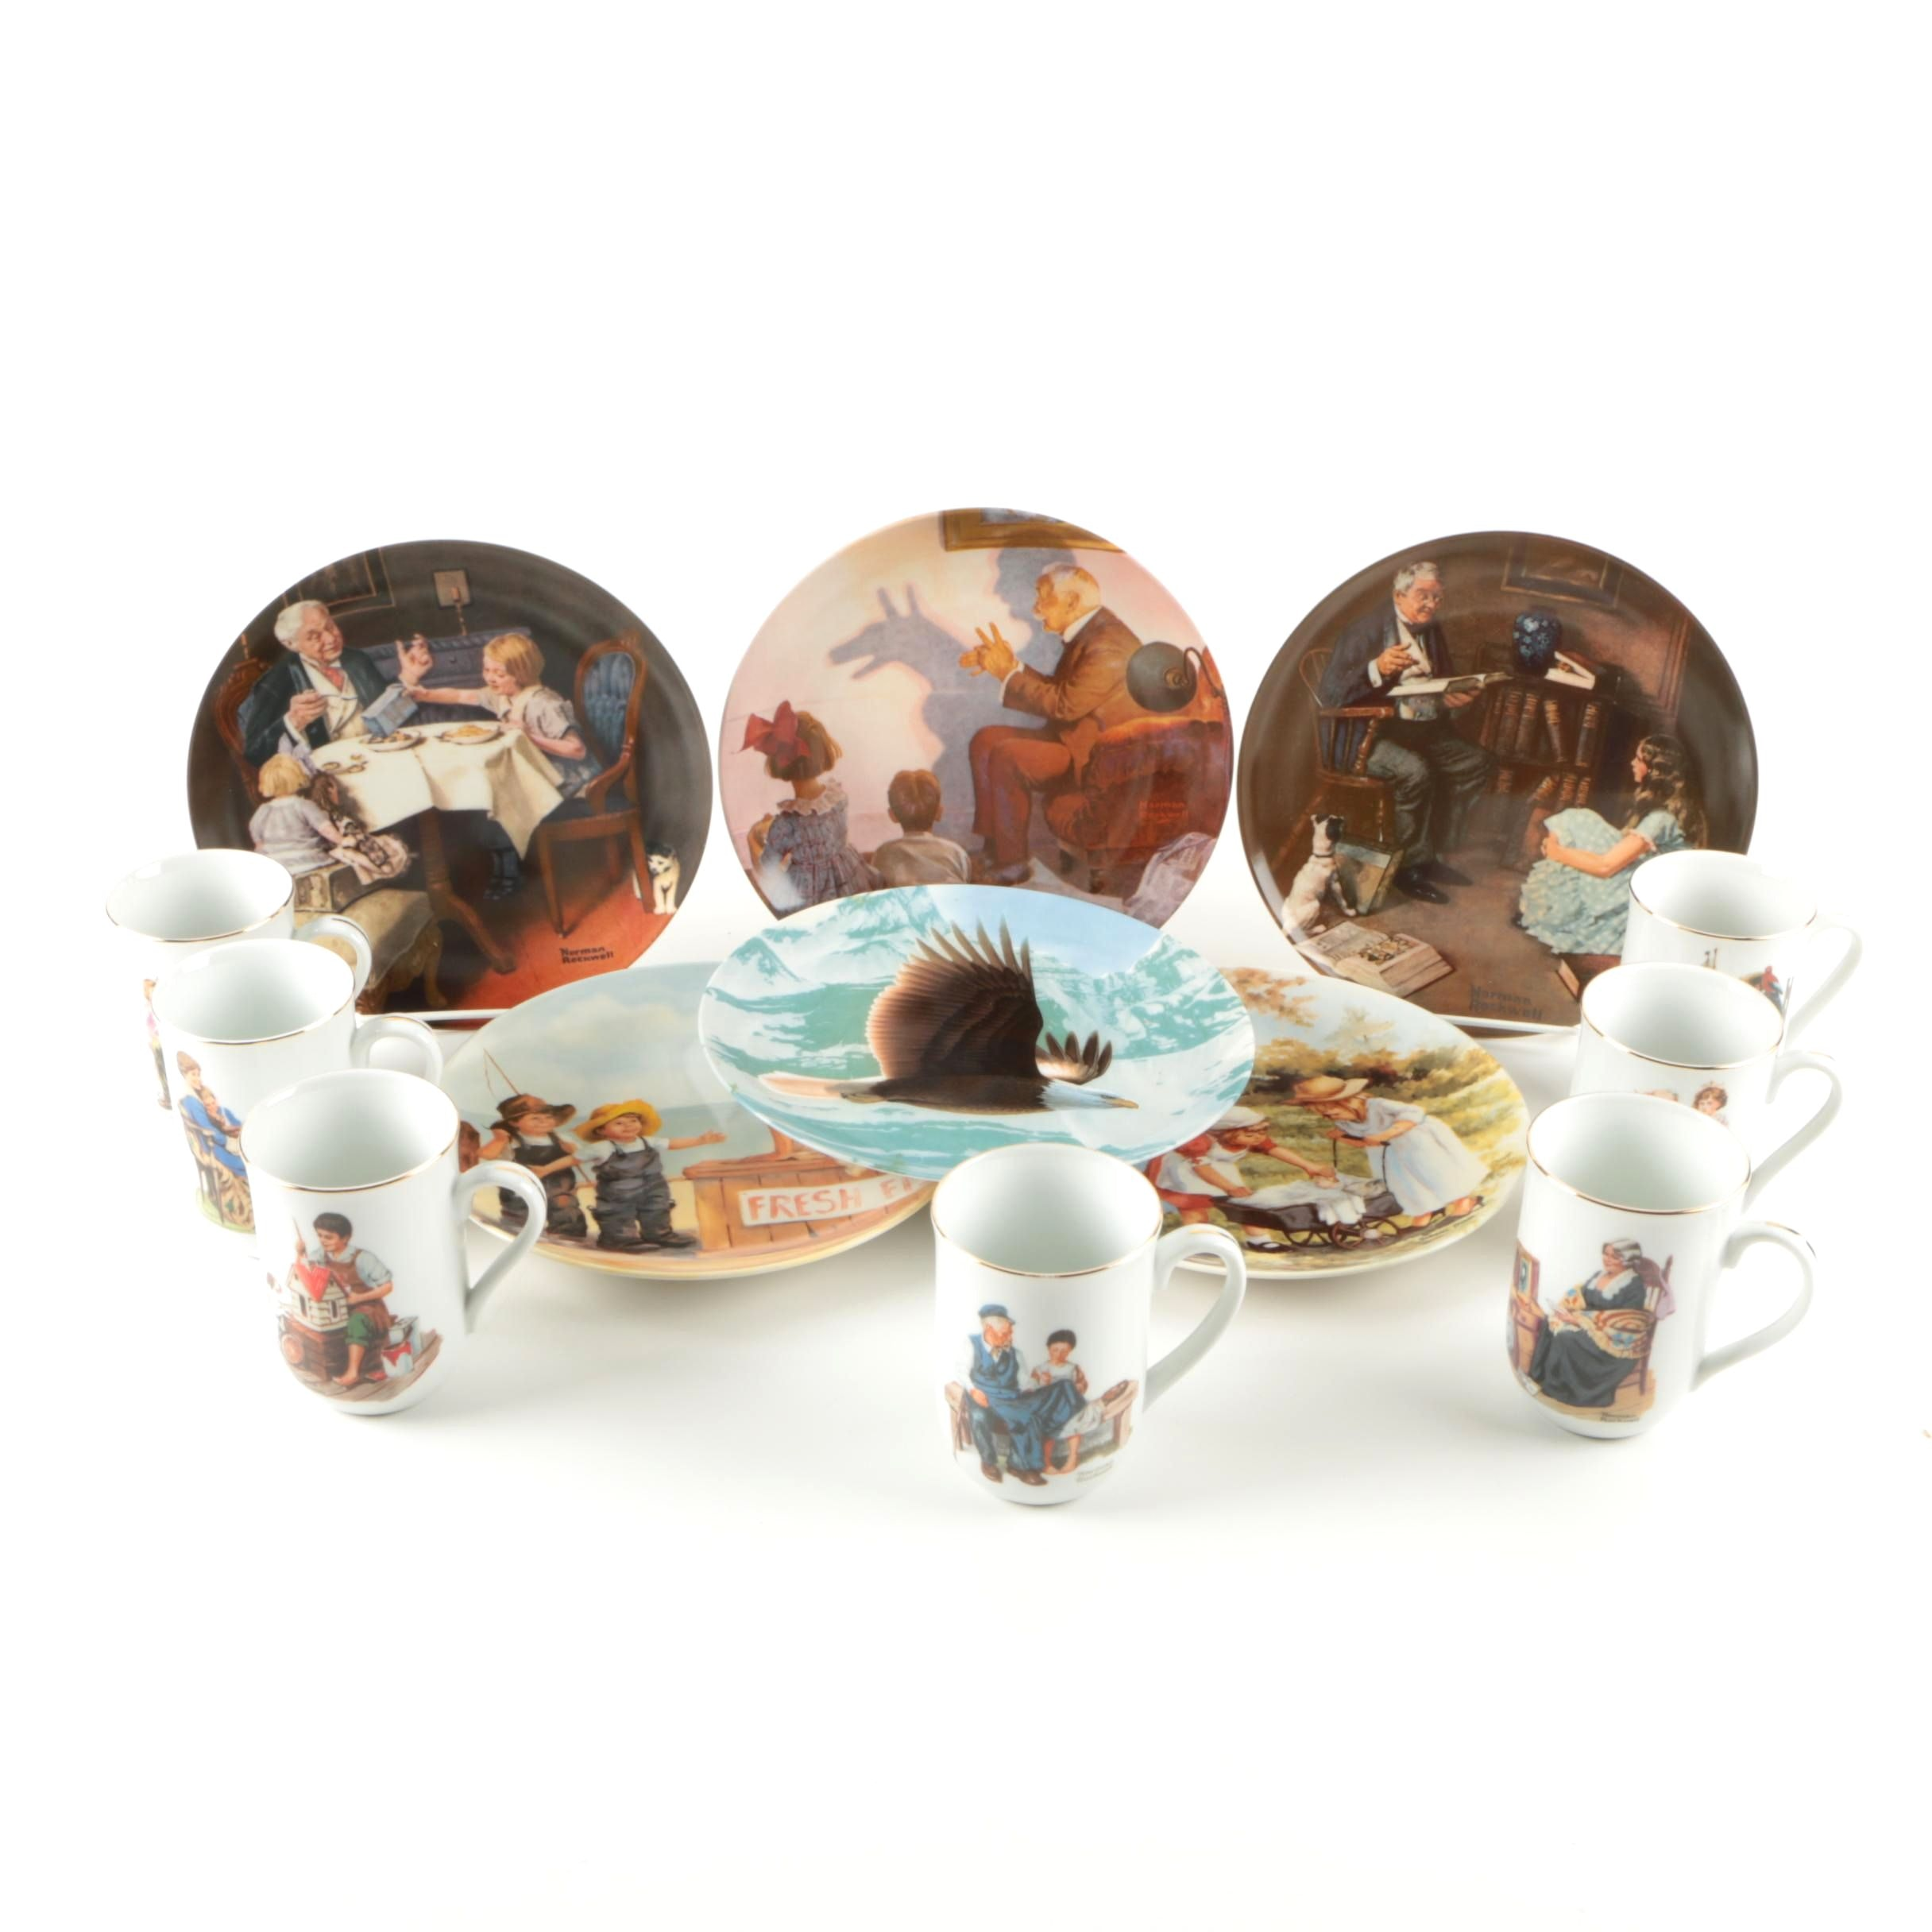 Porcelain Mugs and Plates Featuring Norman Rockwell